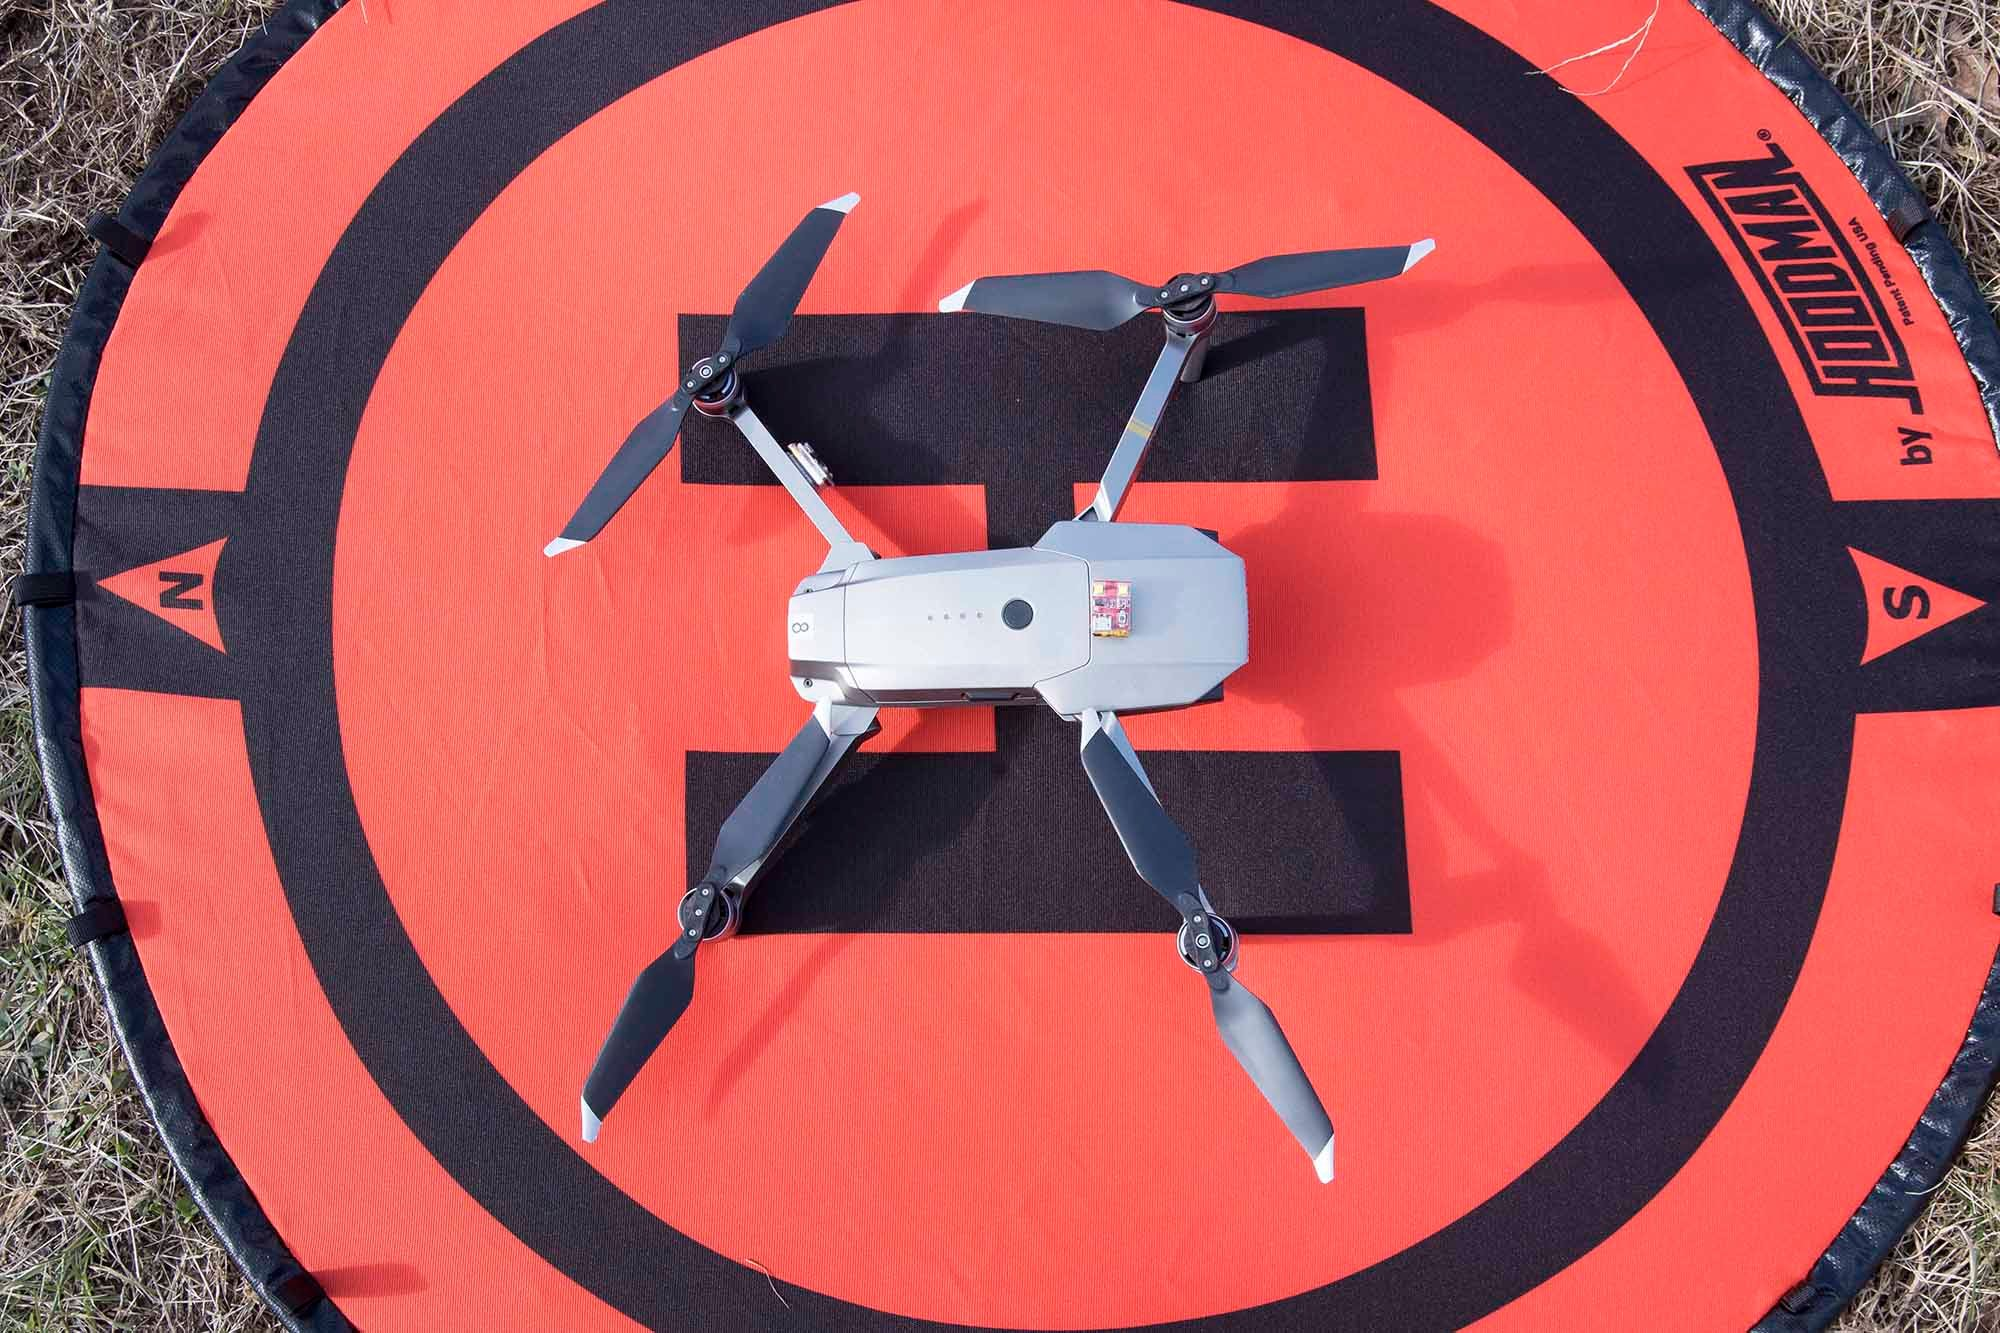 NYPD to use new drones over Times Square on New Year's Eve